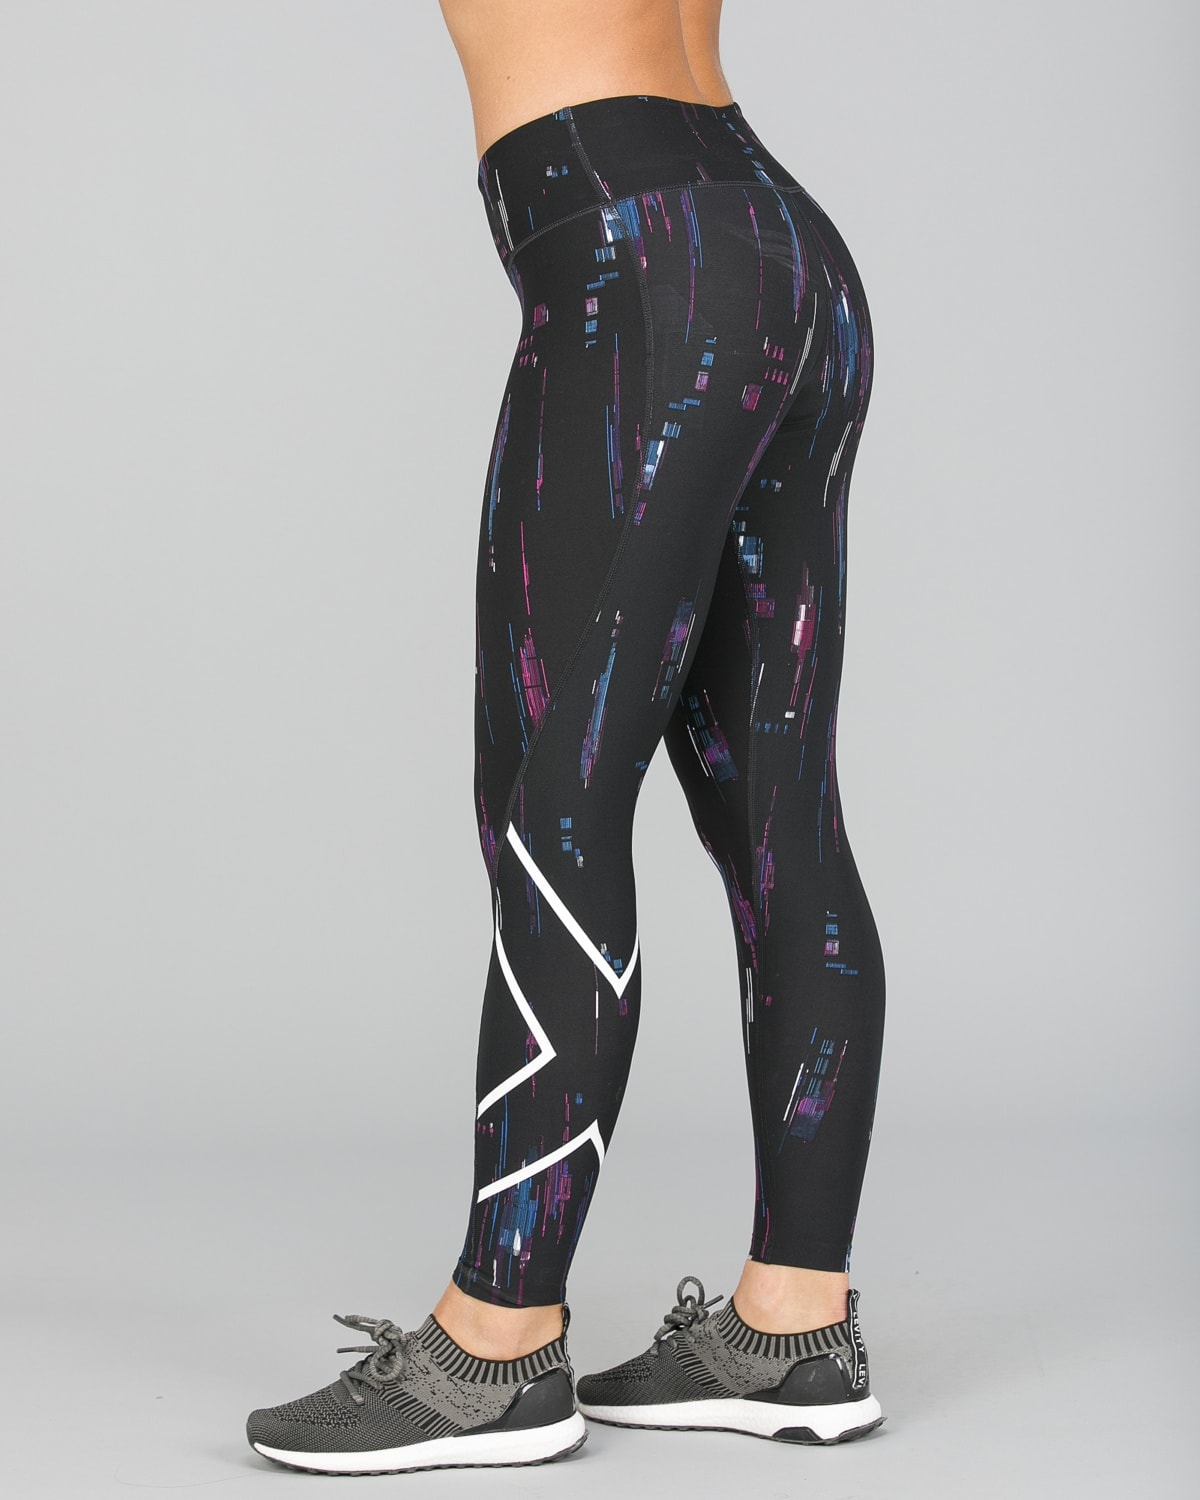 2XU Print Mid-Rise Comp Tights Women – Frequency Boysenberry:White10